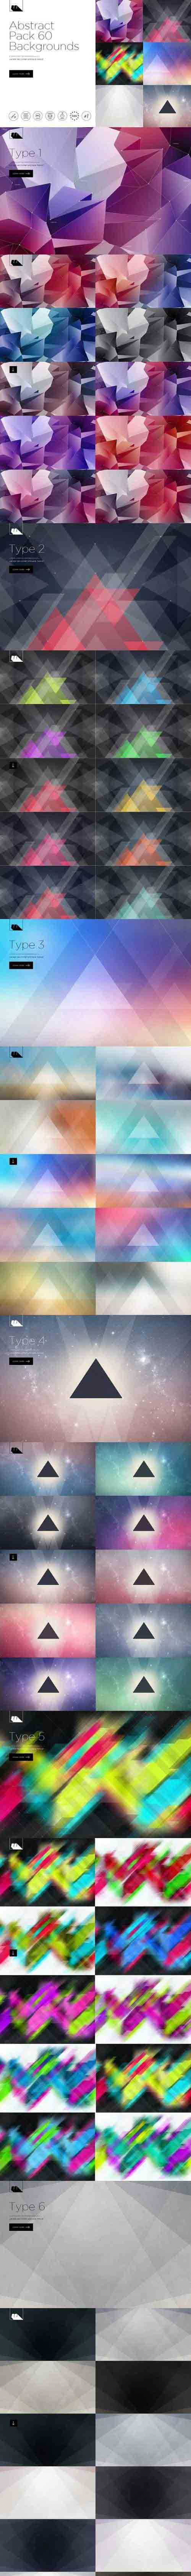 CreativeMarket - 60 Abstract Backgrounds Pack